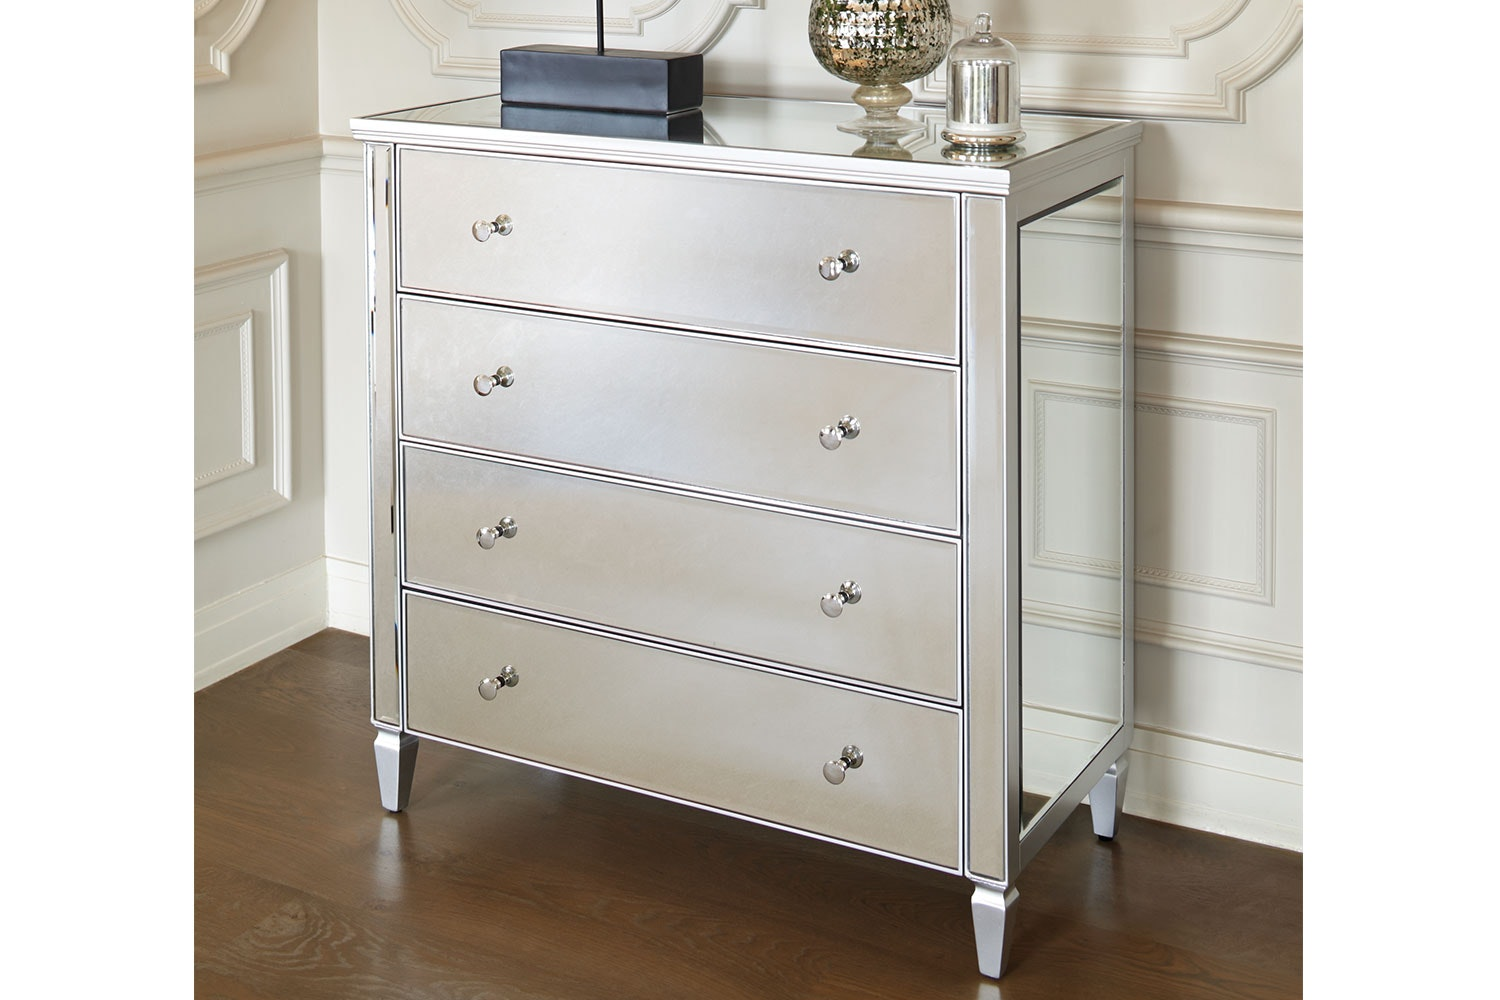 Mirano 4 Drawer Dresser by Nero Furniture